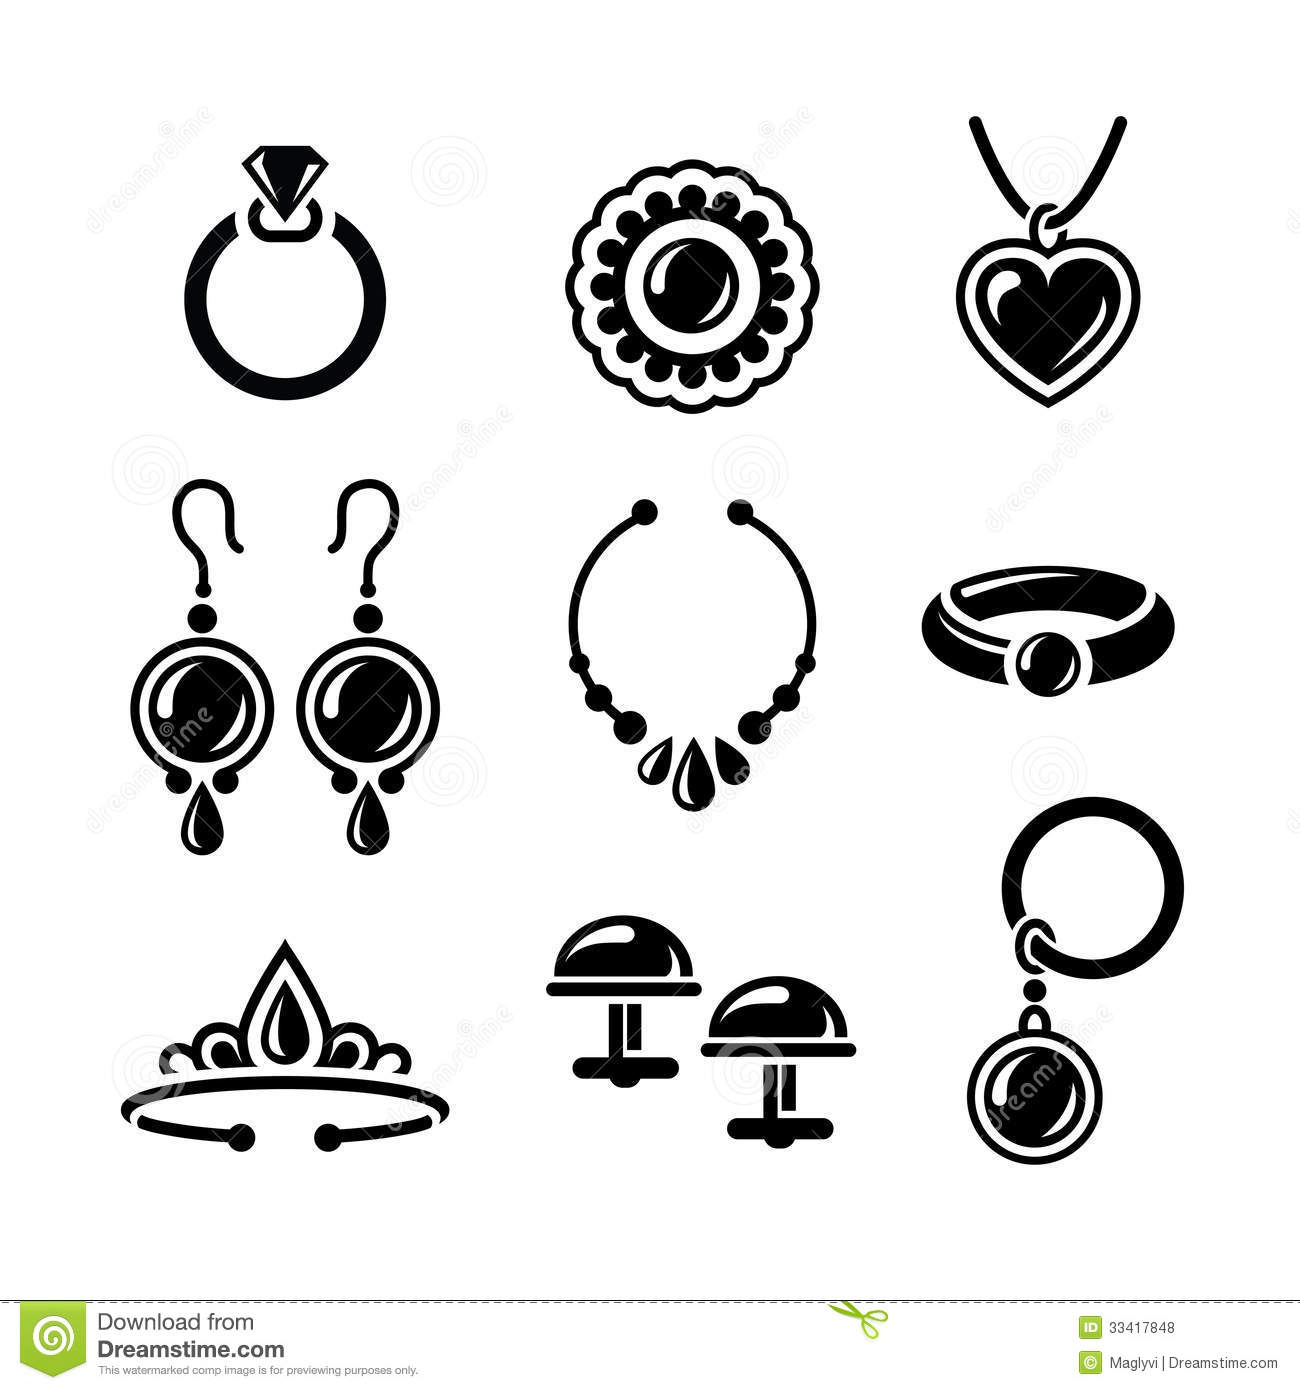 jewelry clip art free download - photo #43